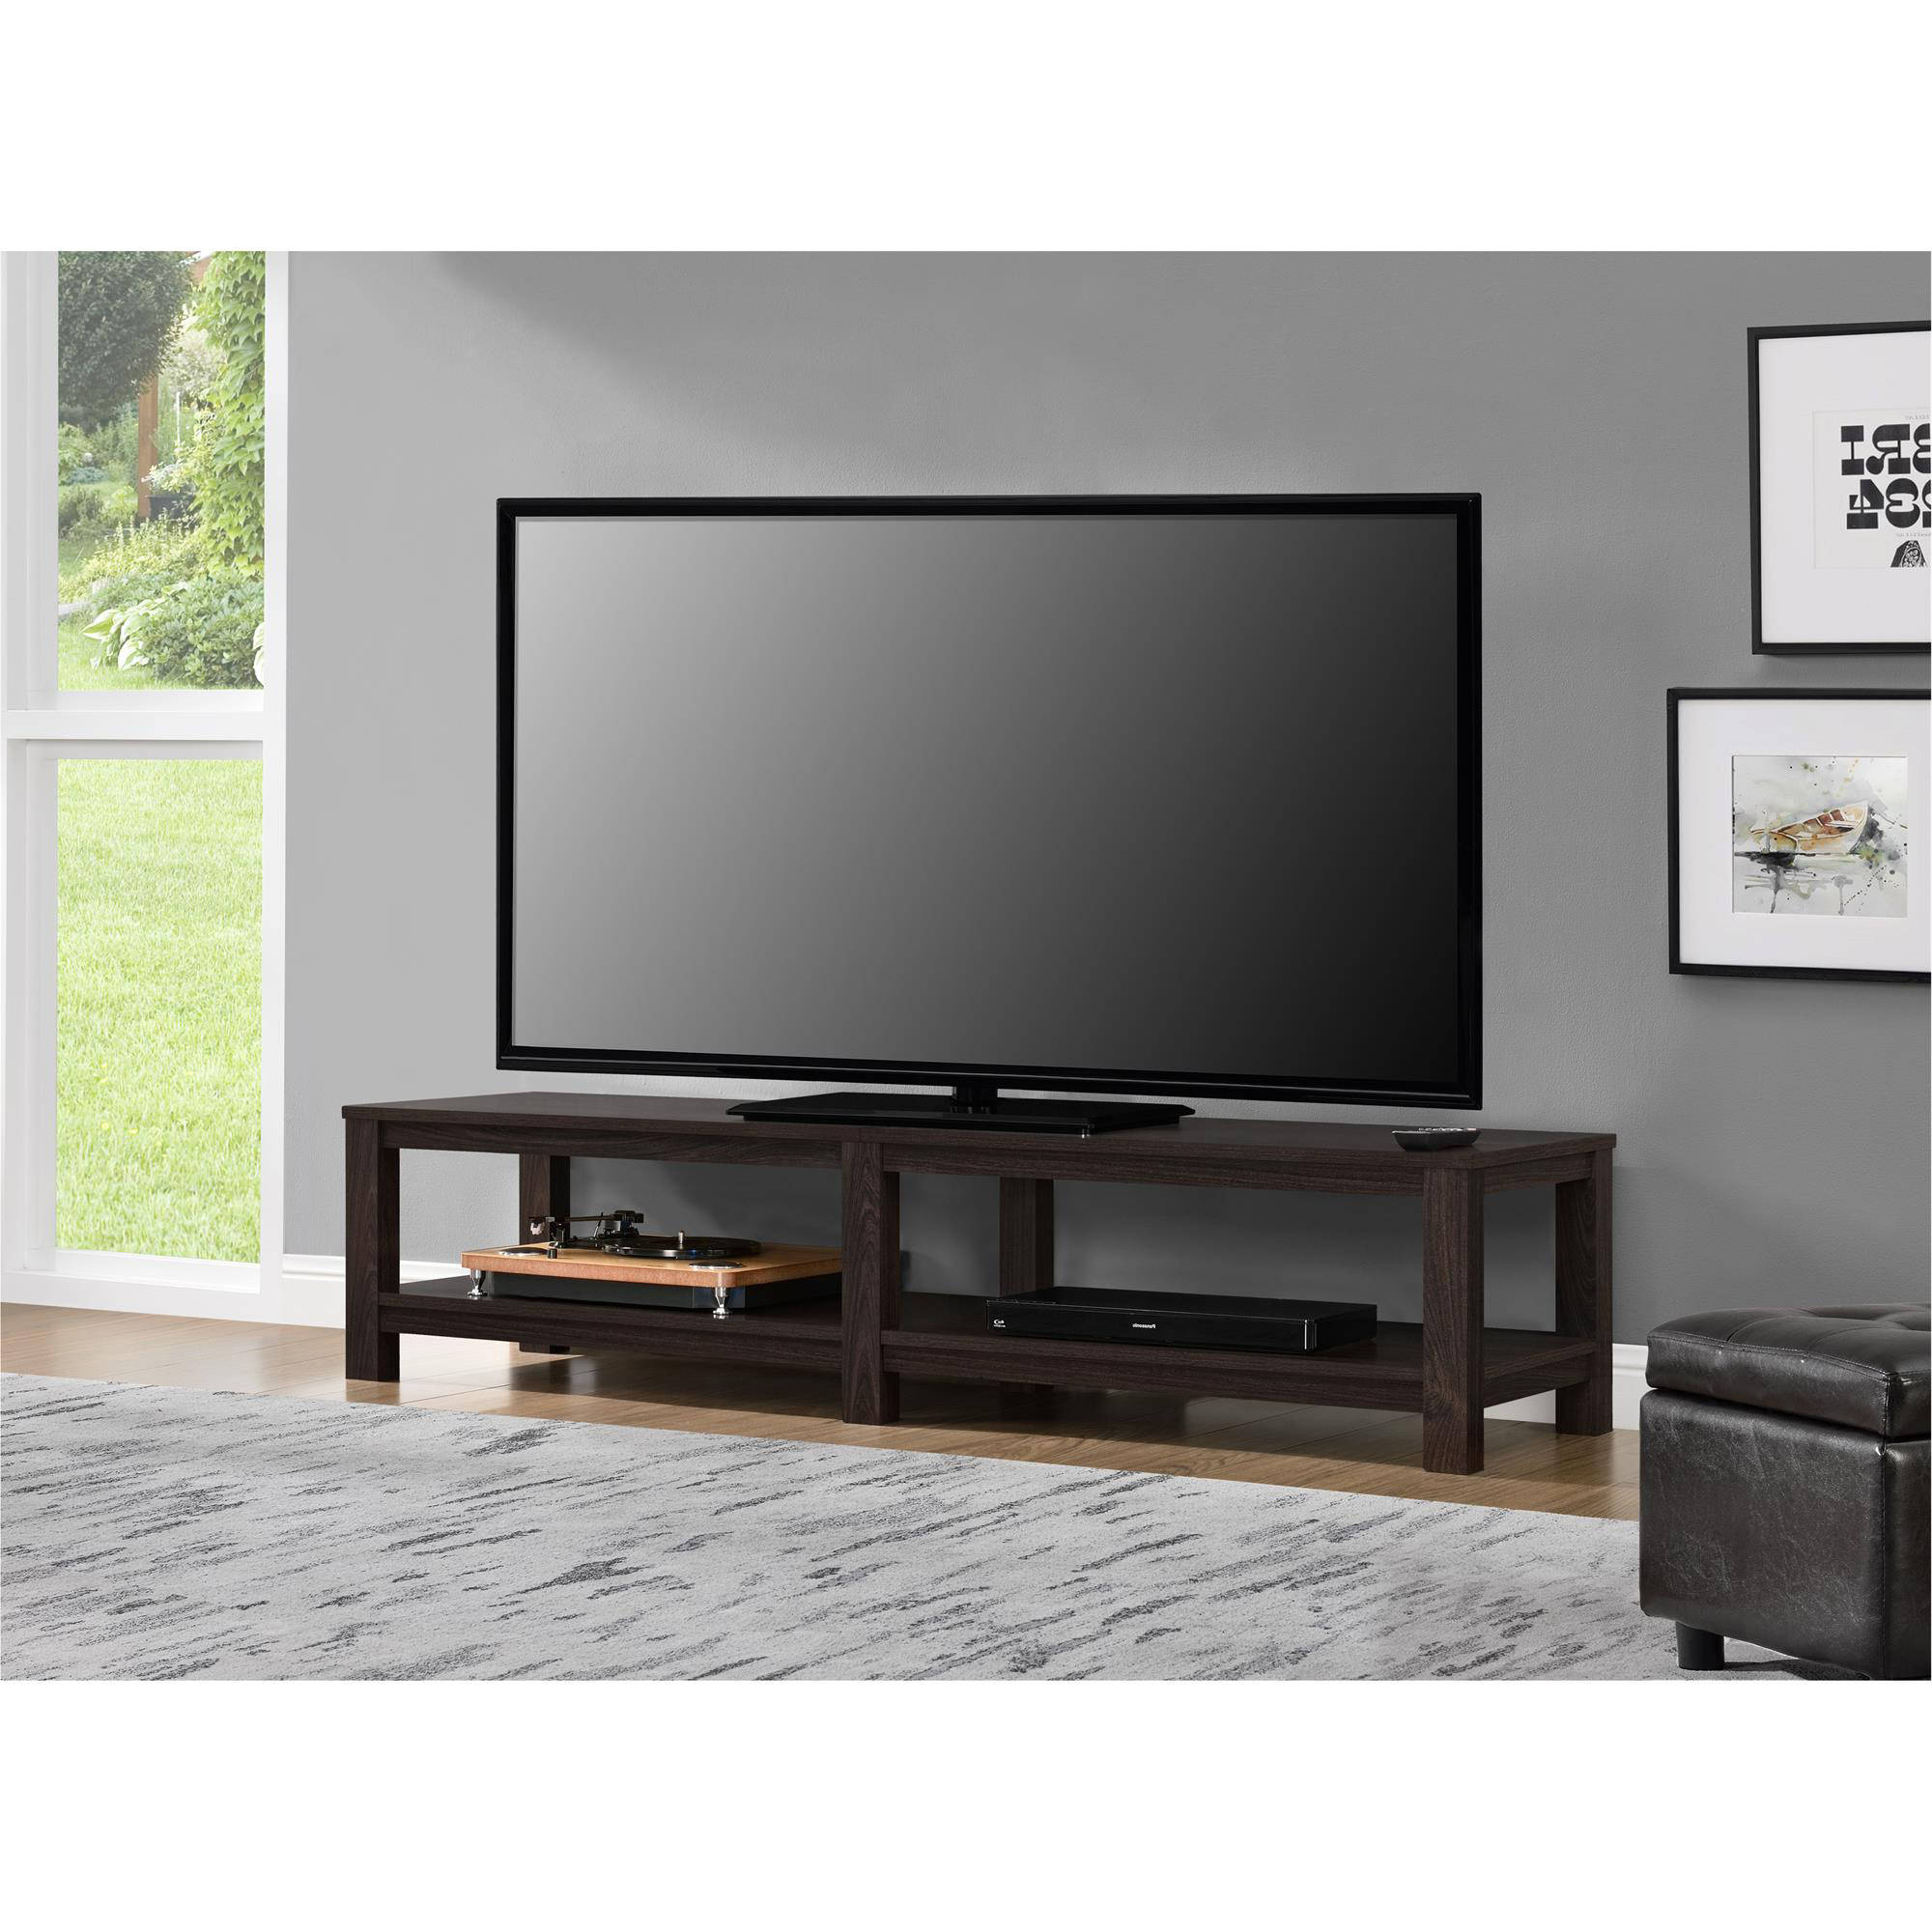 """Most Recent Mainstays Parsons Tv Stand For Tvs Up To 65"""", Multiple Colors Intended For Tv Stands For 43 Inch Tv (View 5 of 20)"""